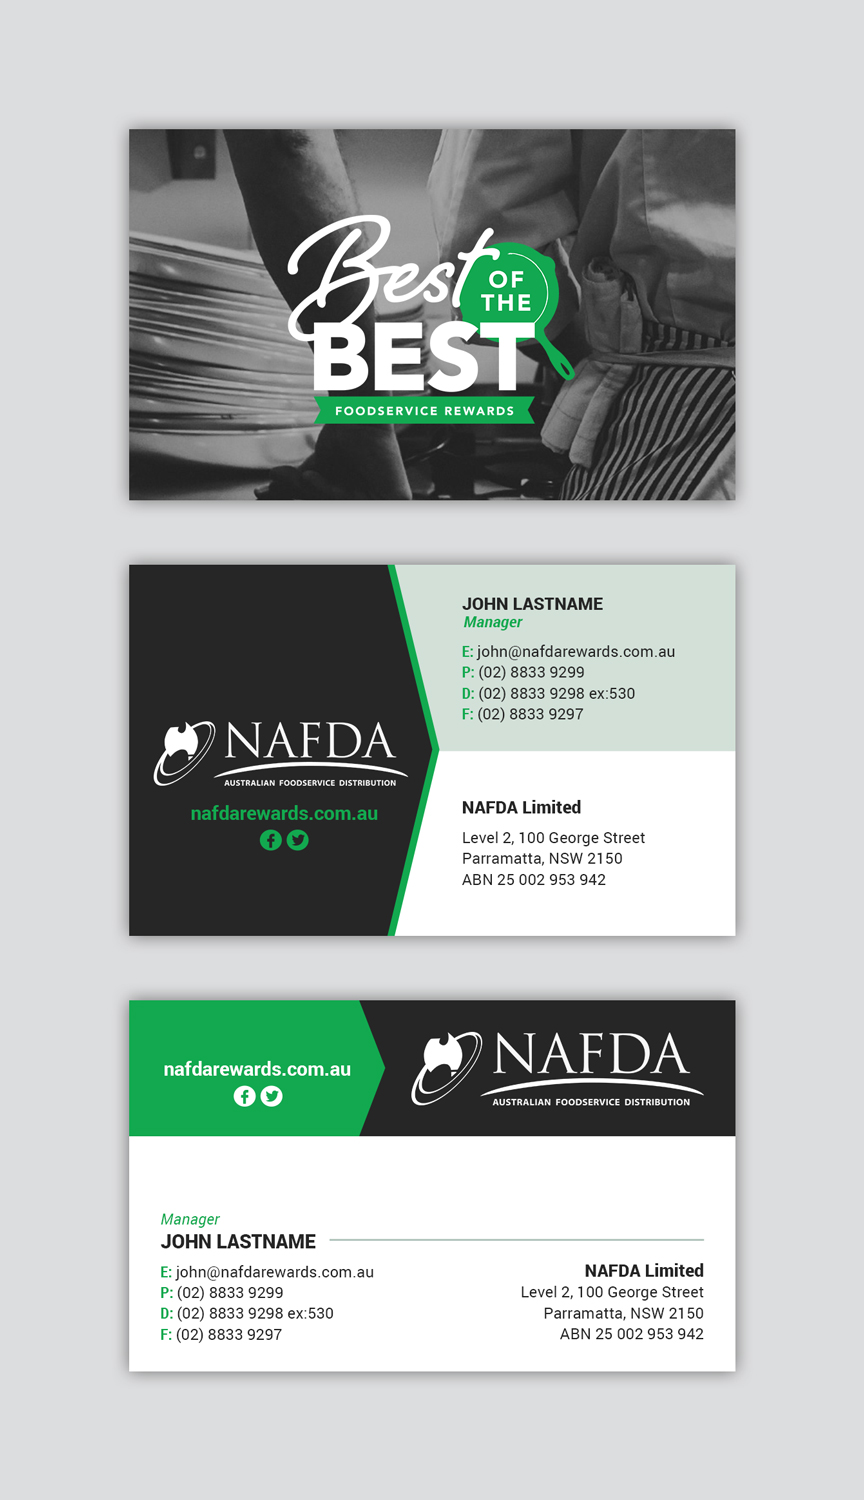 Modern masculine distribution business card design for nafda business card design by mind for nafda limited design 11027665 reheart Gallery